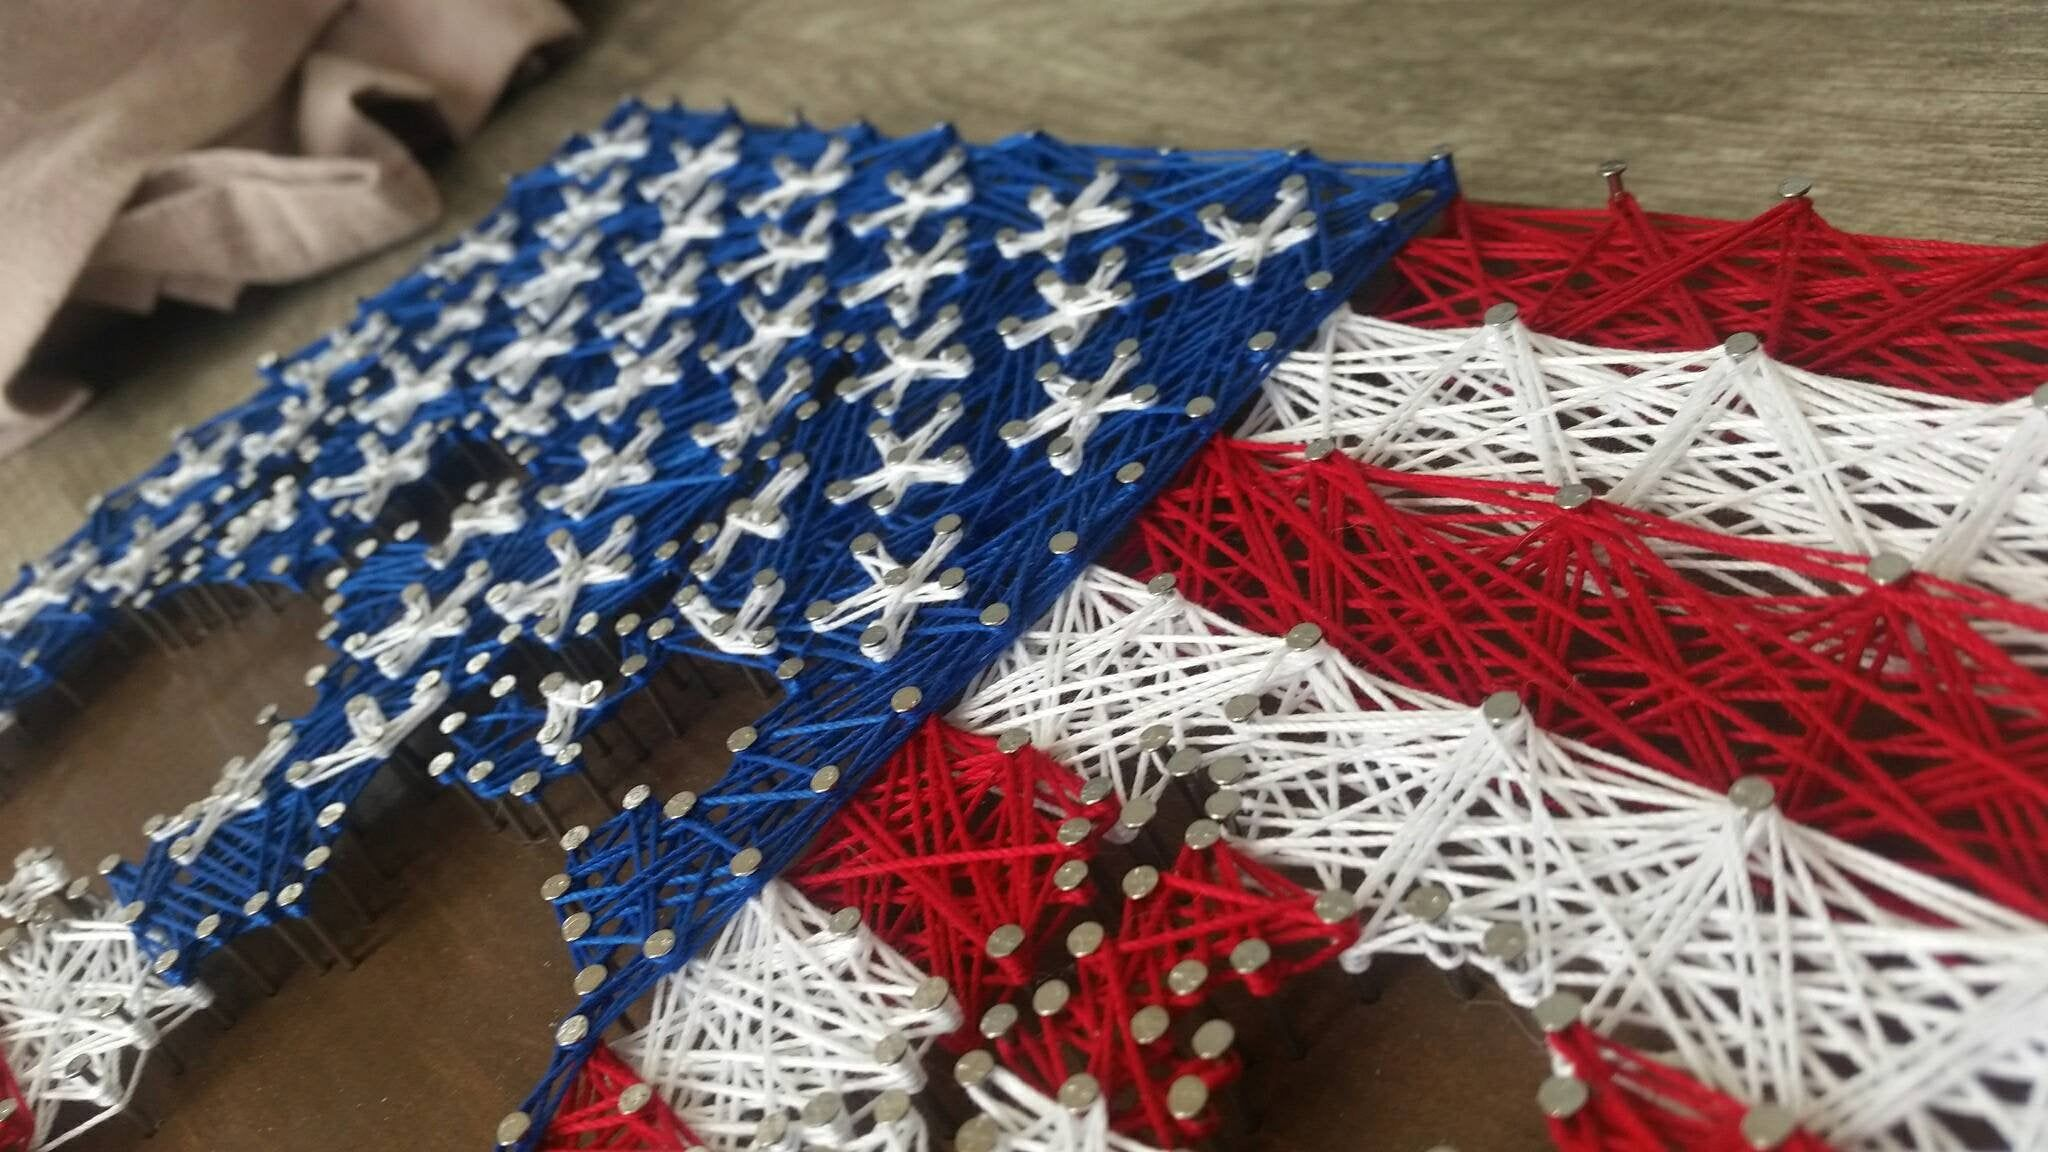 American Flag String Art with Soldier Silhouettes, American string art, flag string art, military string art #americanflagart